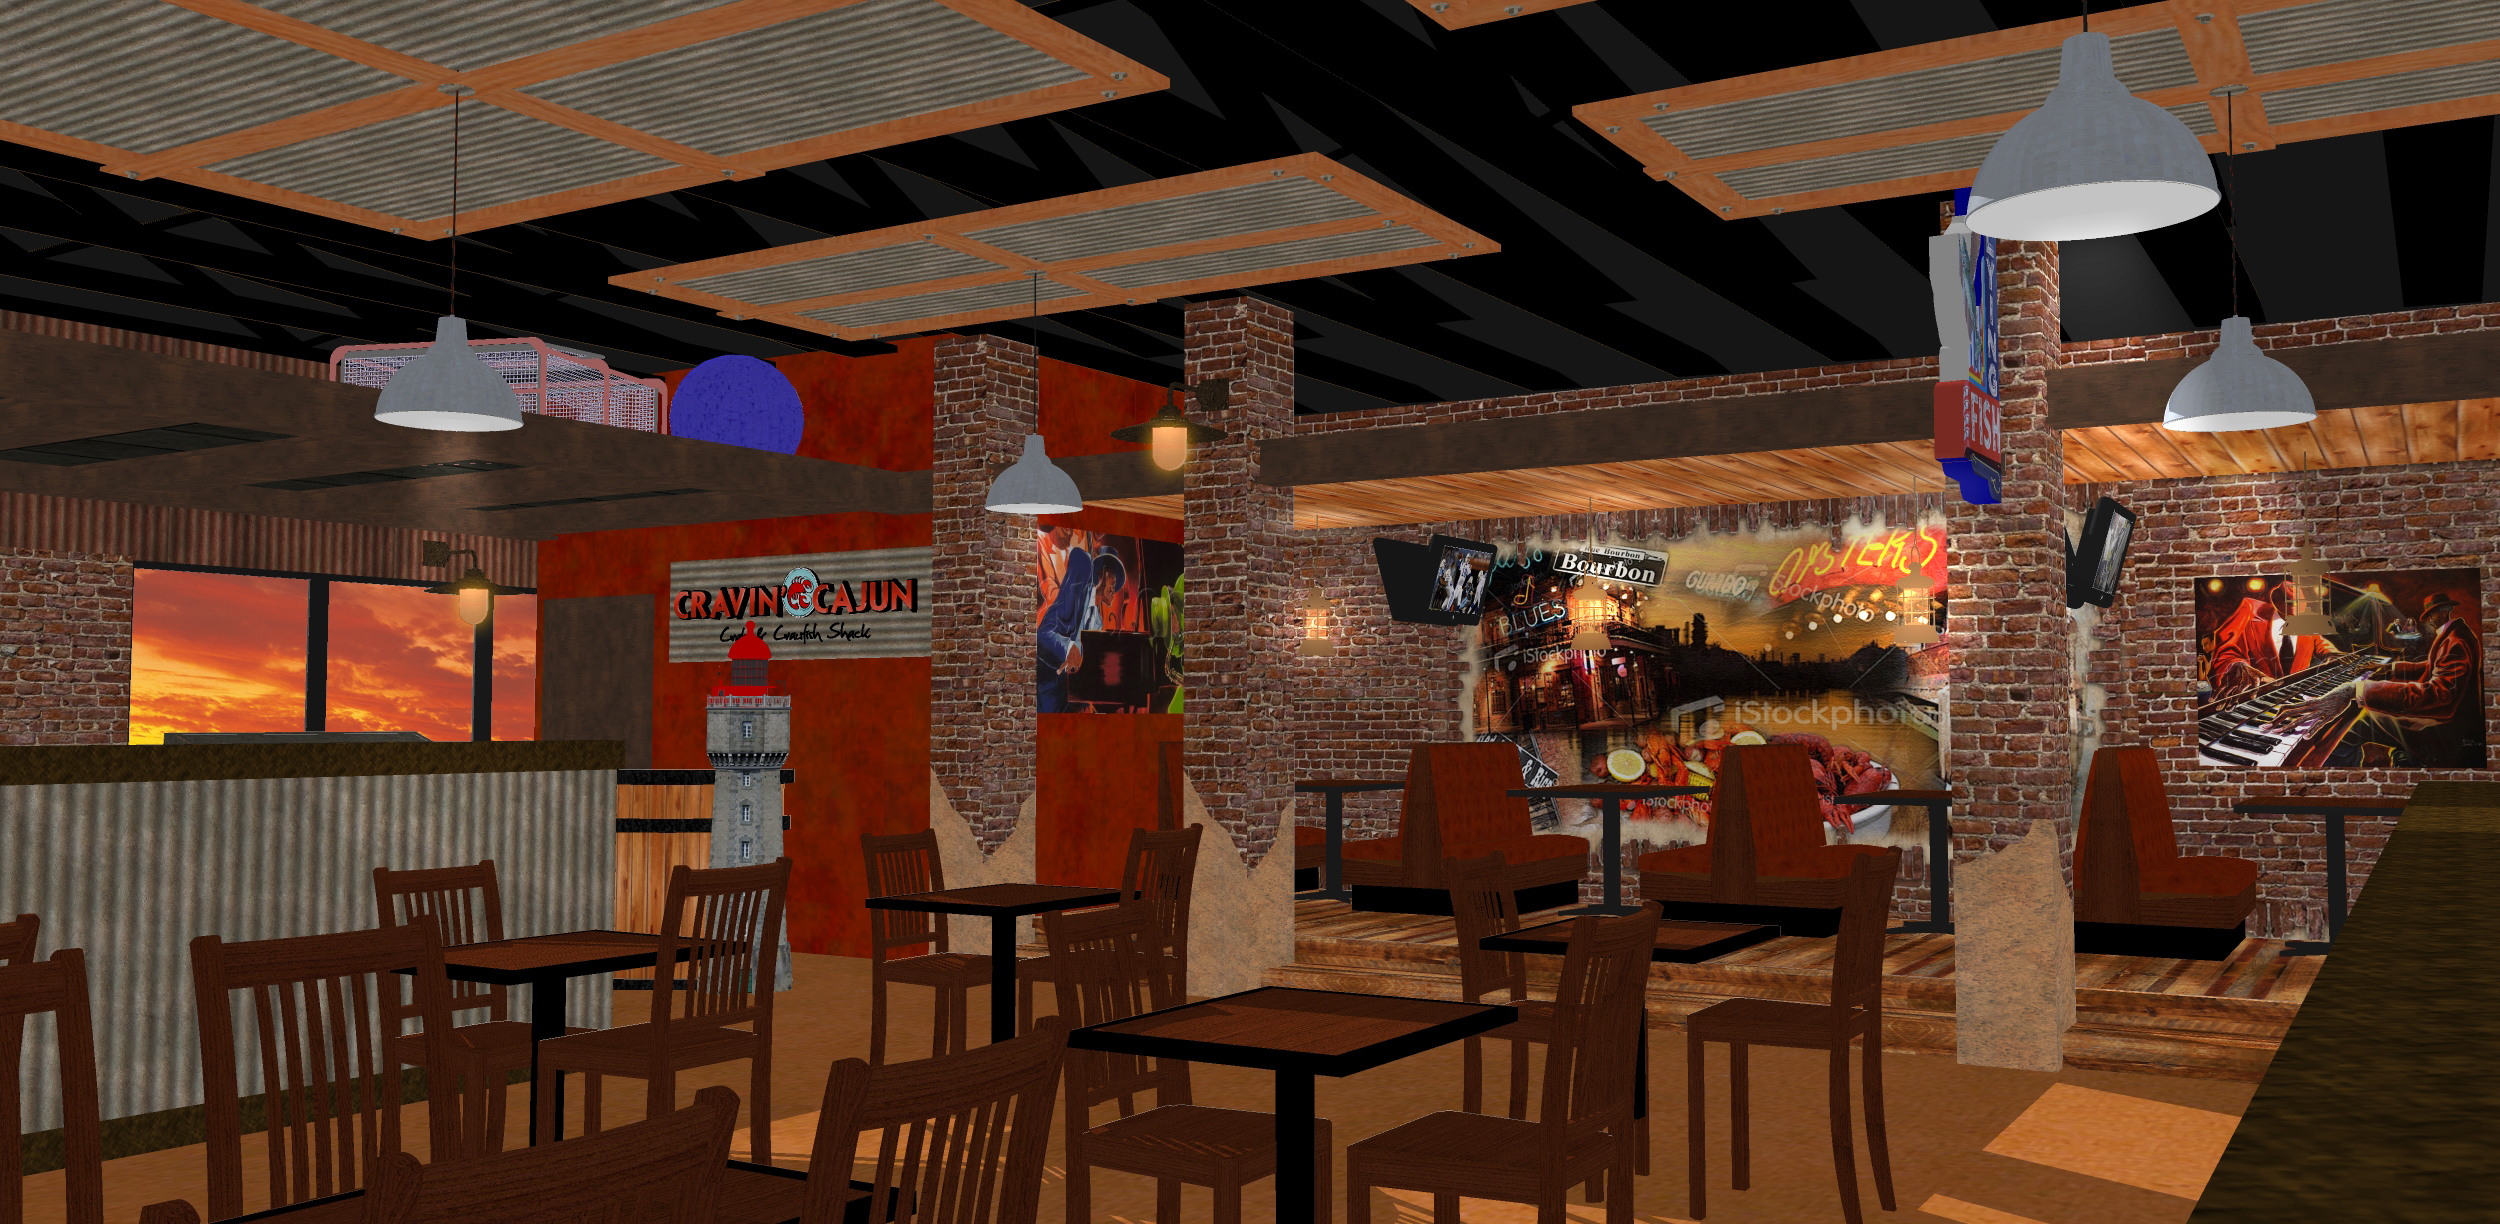 Restaurant interior design d rendering